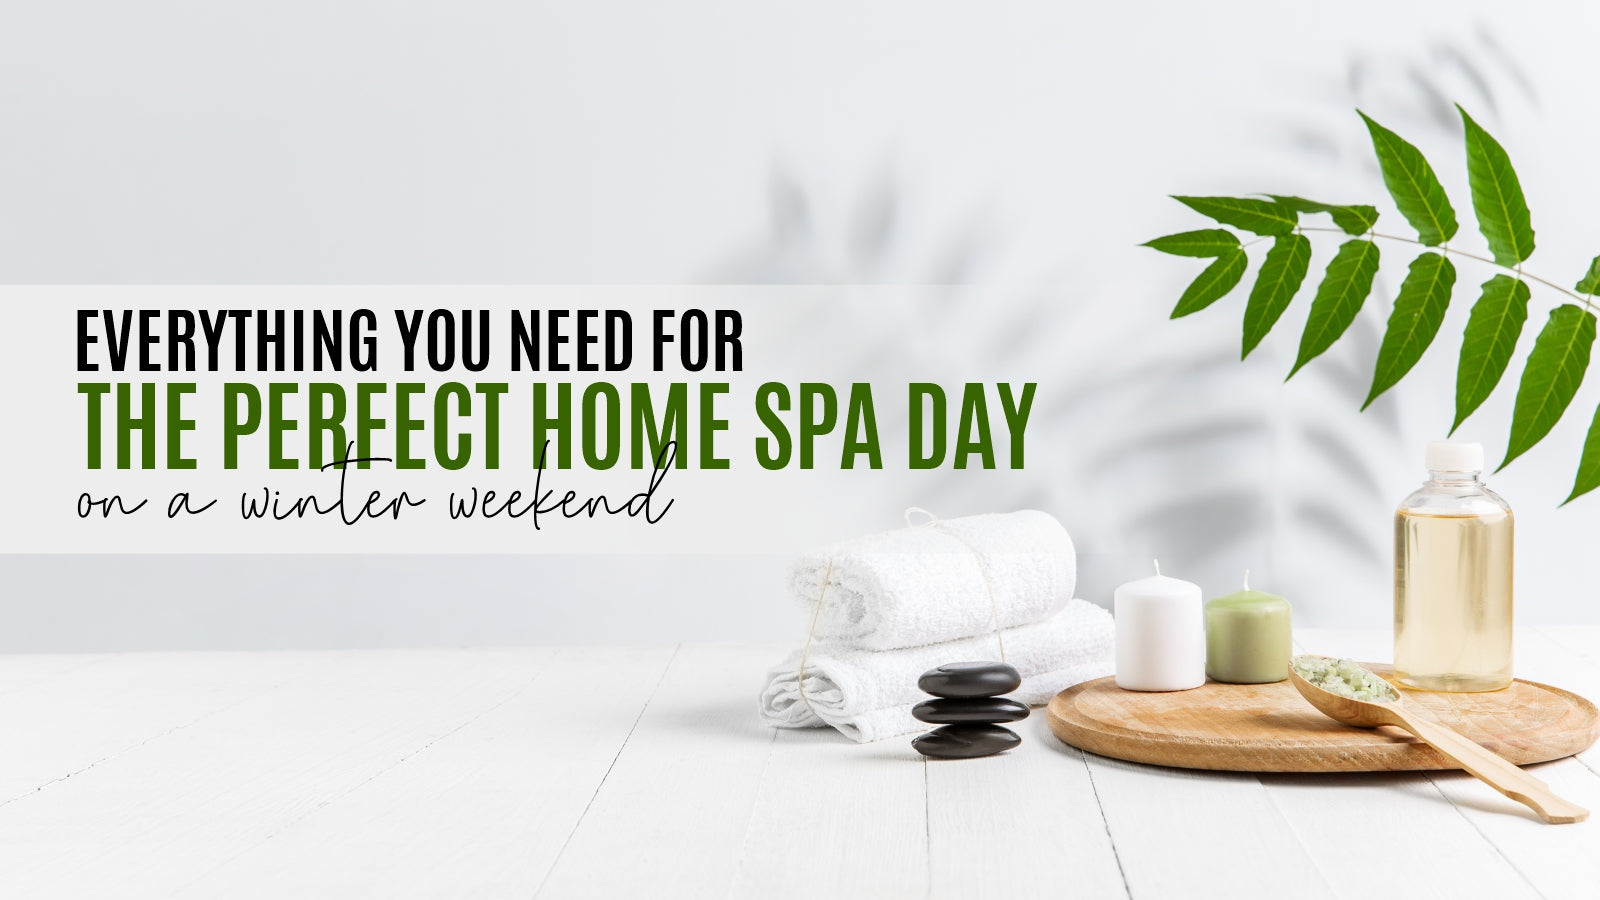 Everything you need for the perfect Home Spa Day on a winter weekend!